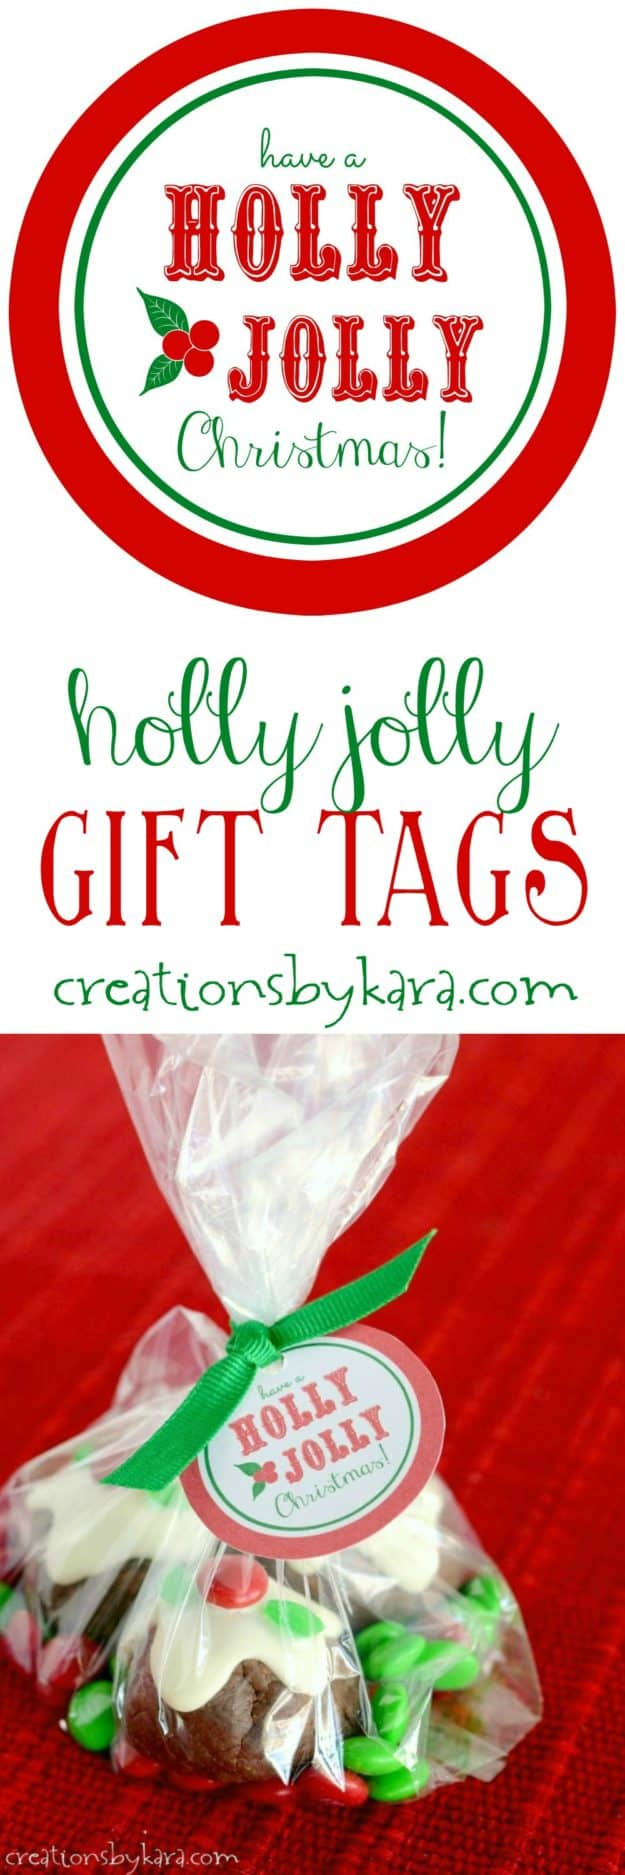 Free printable Holly Jolly gift tags. Perfect for wrapping Christmas gifts, or attaching to bags of goodies! ~from creationsbykara.com